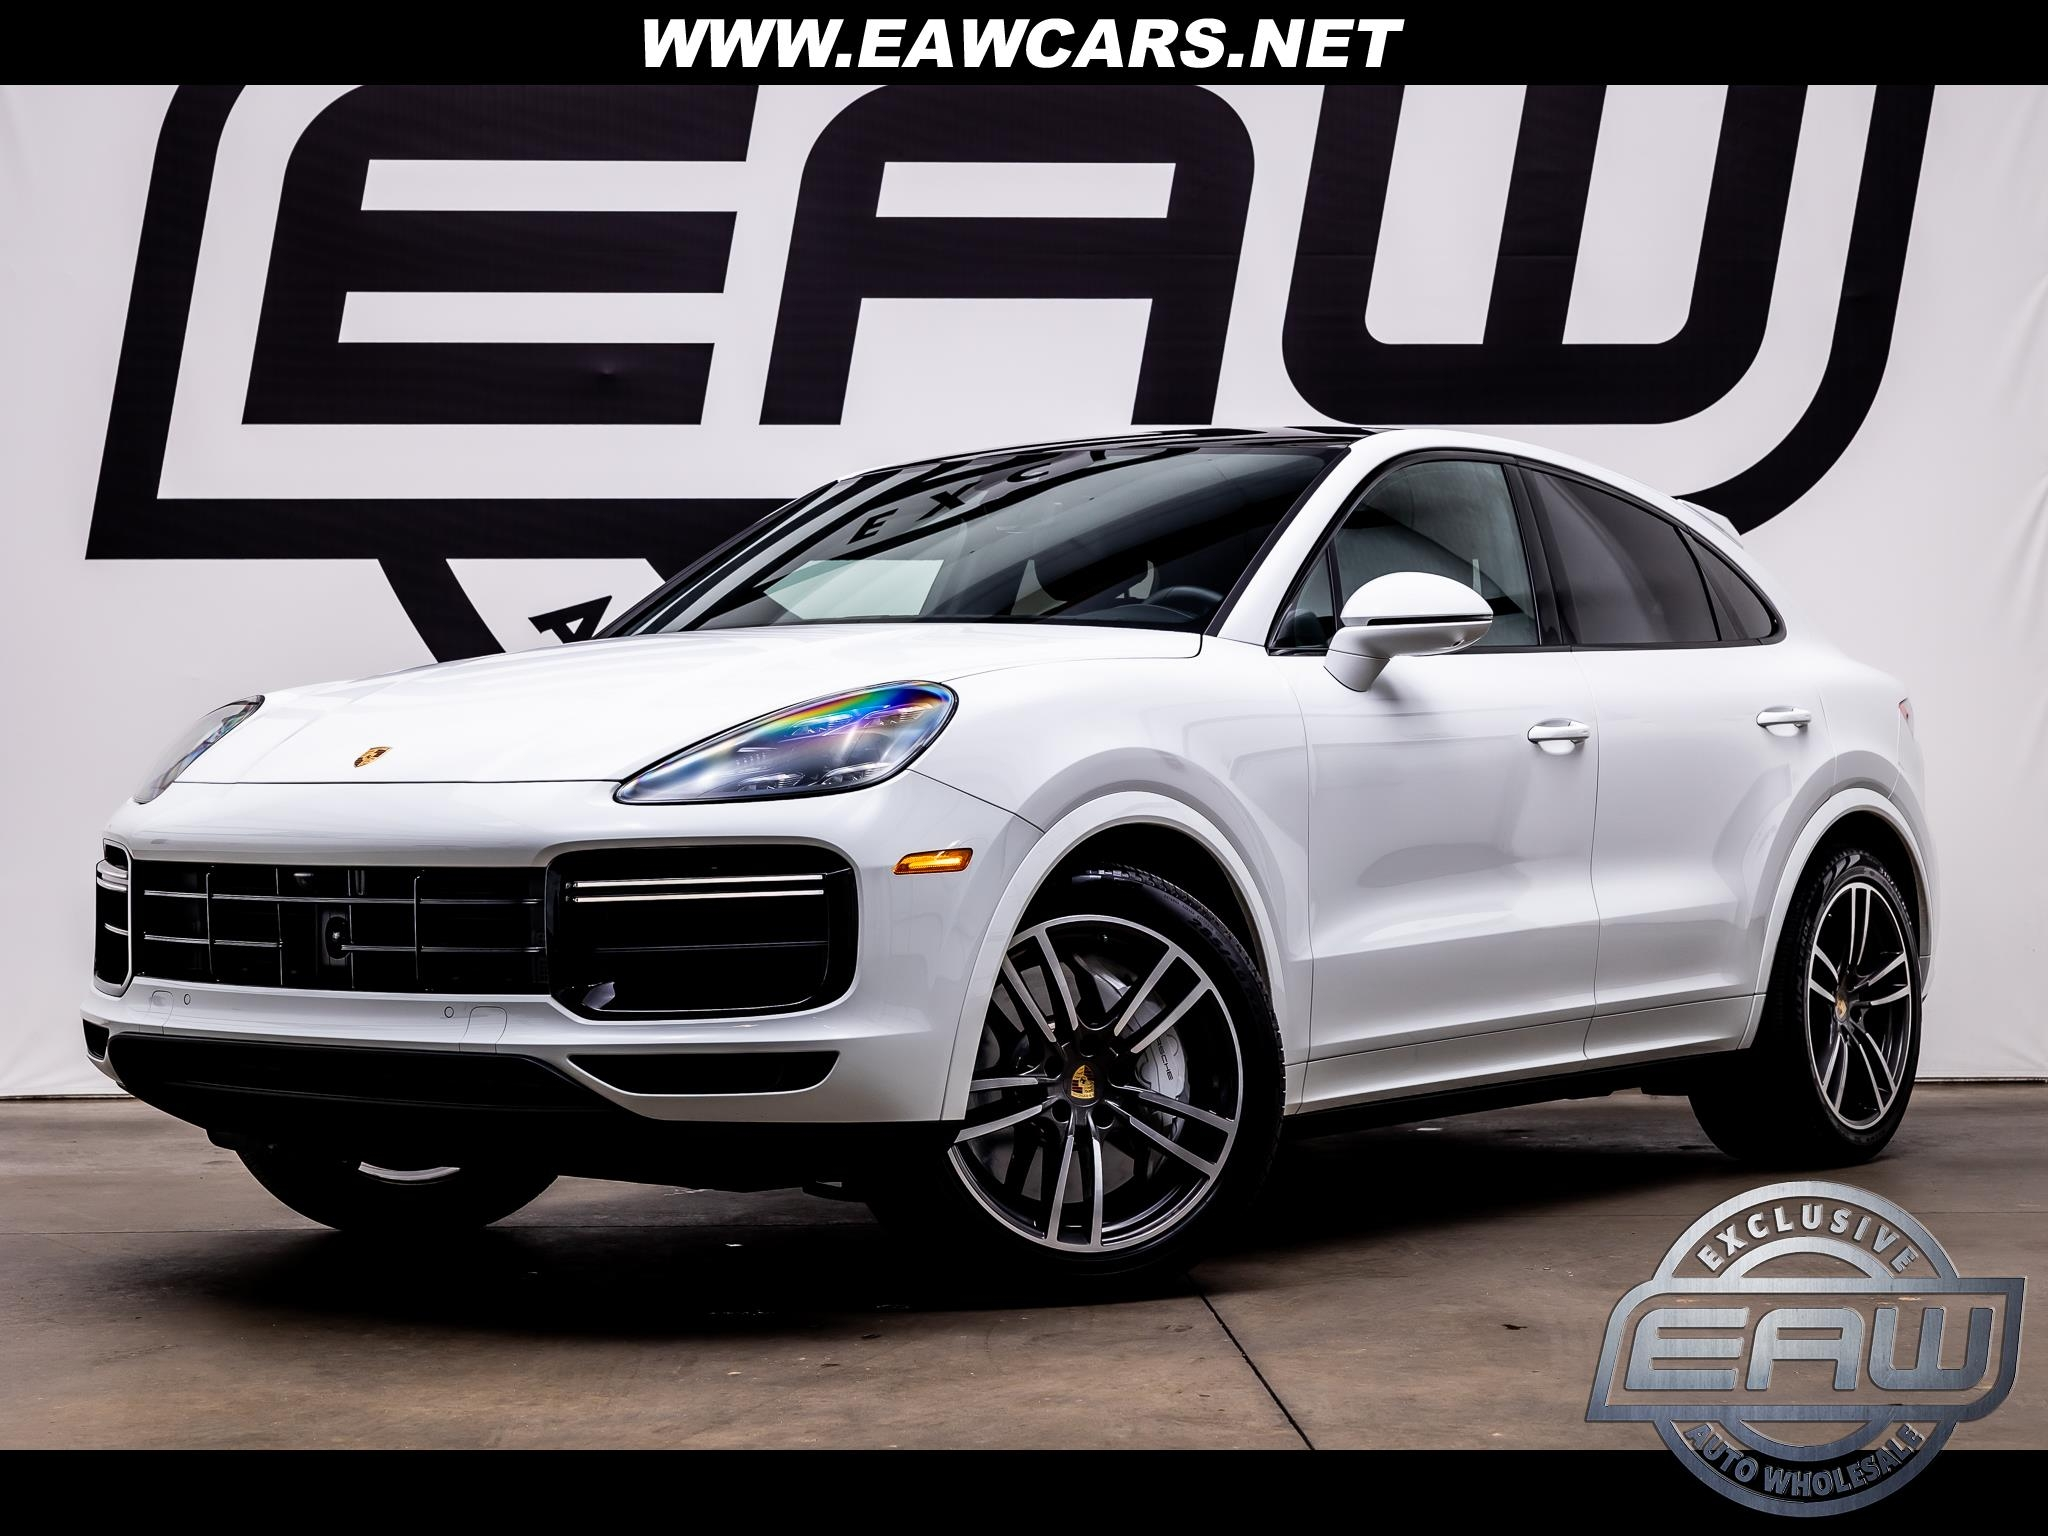 Porsche Cayenne Turbo Coupe AWD 2020